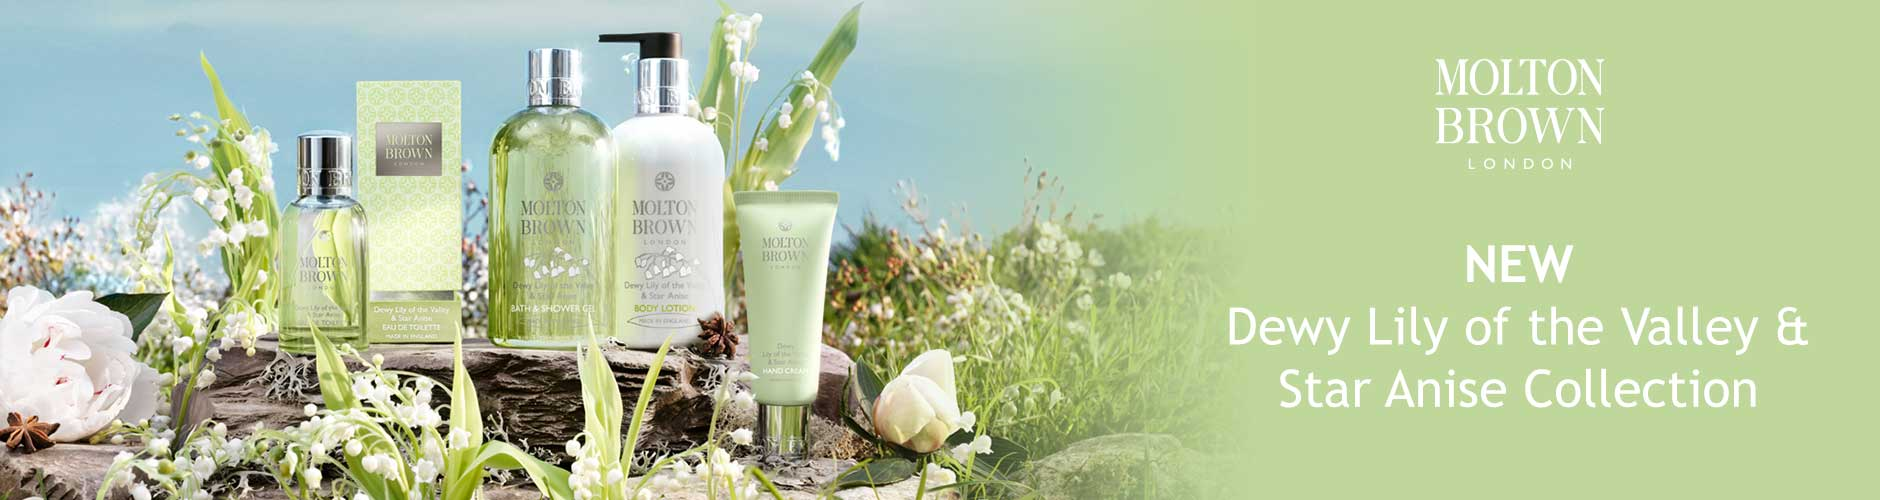 Molton Brown London. New Dewy Lily of the Valley & Star Anise Collection